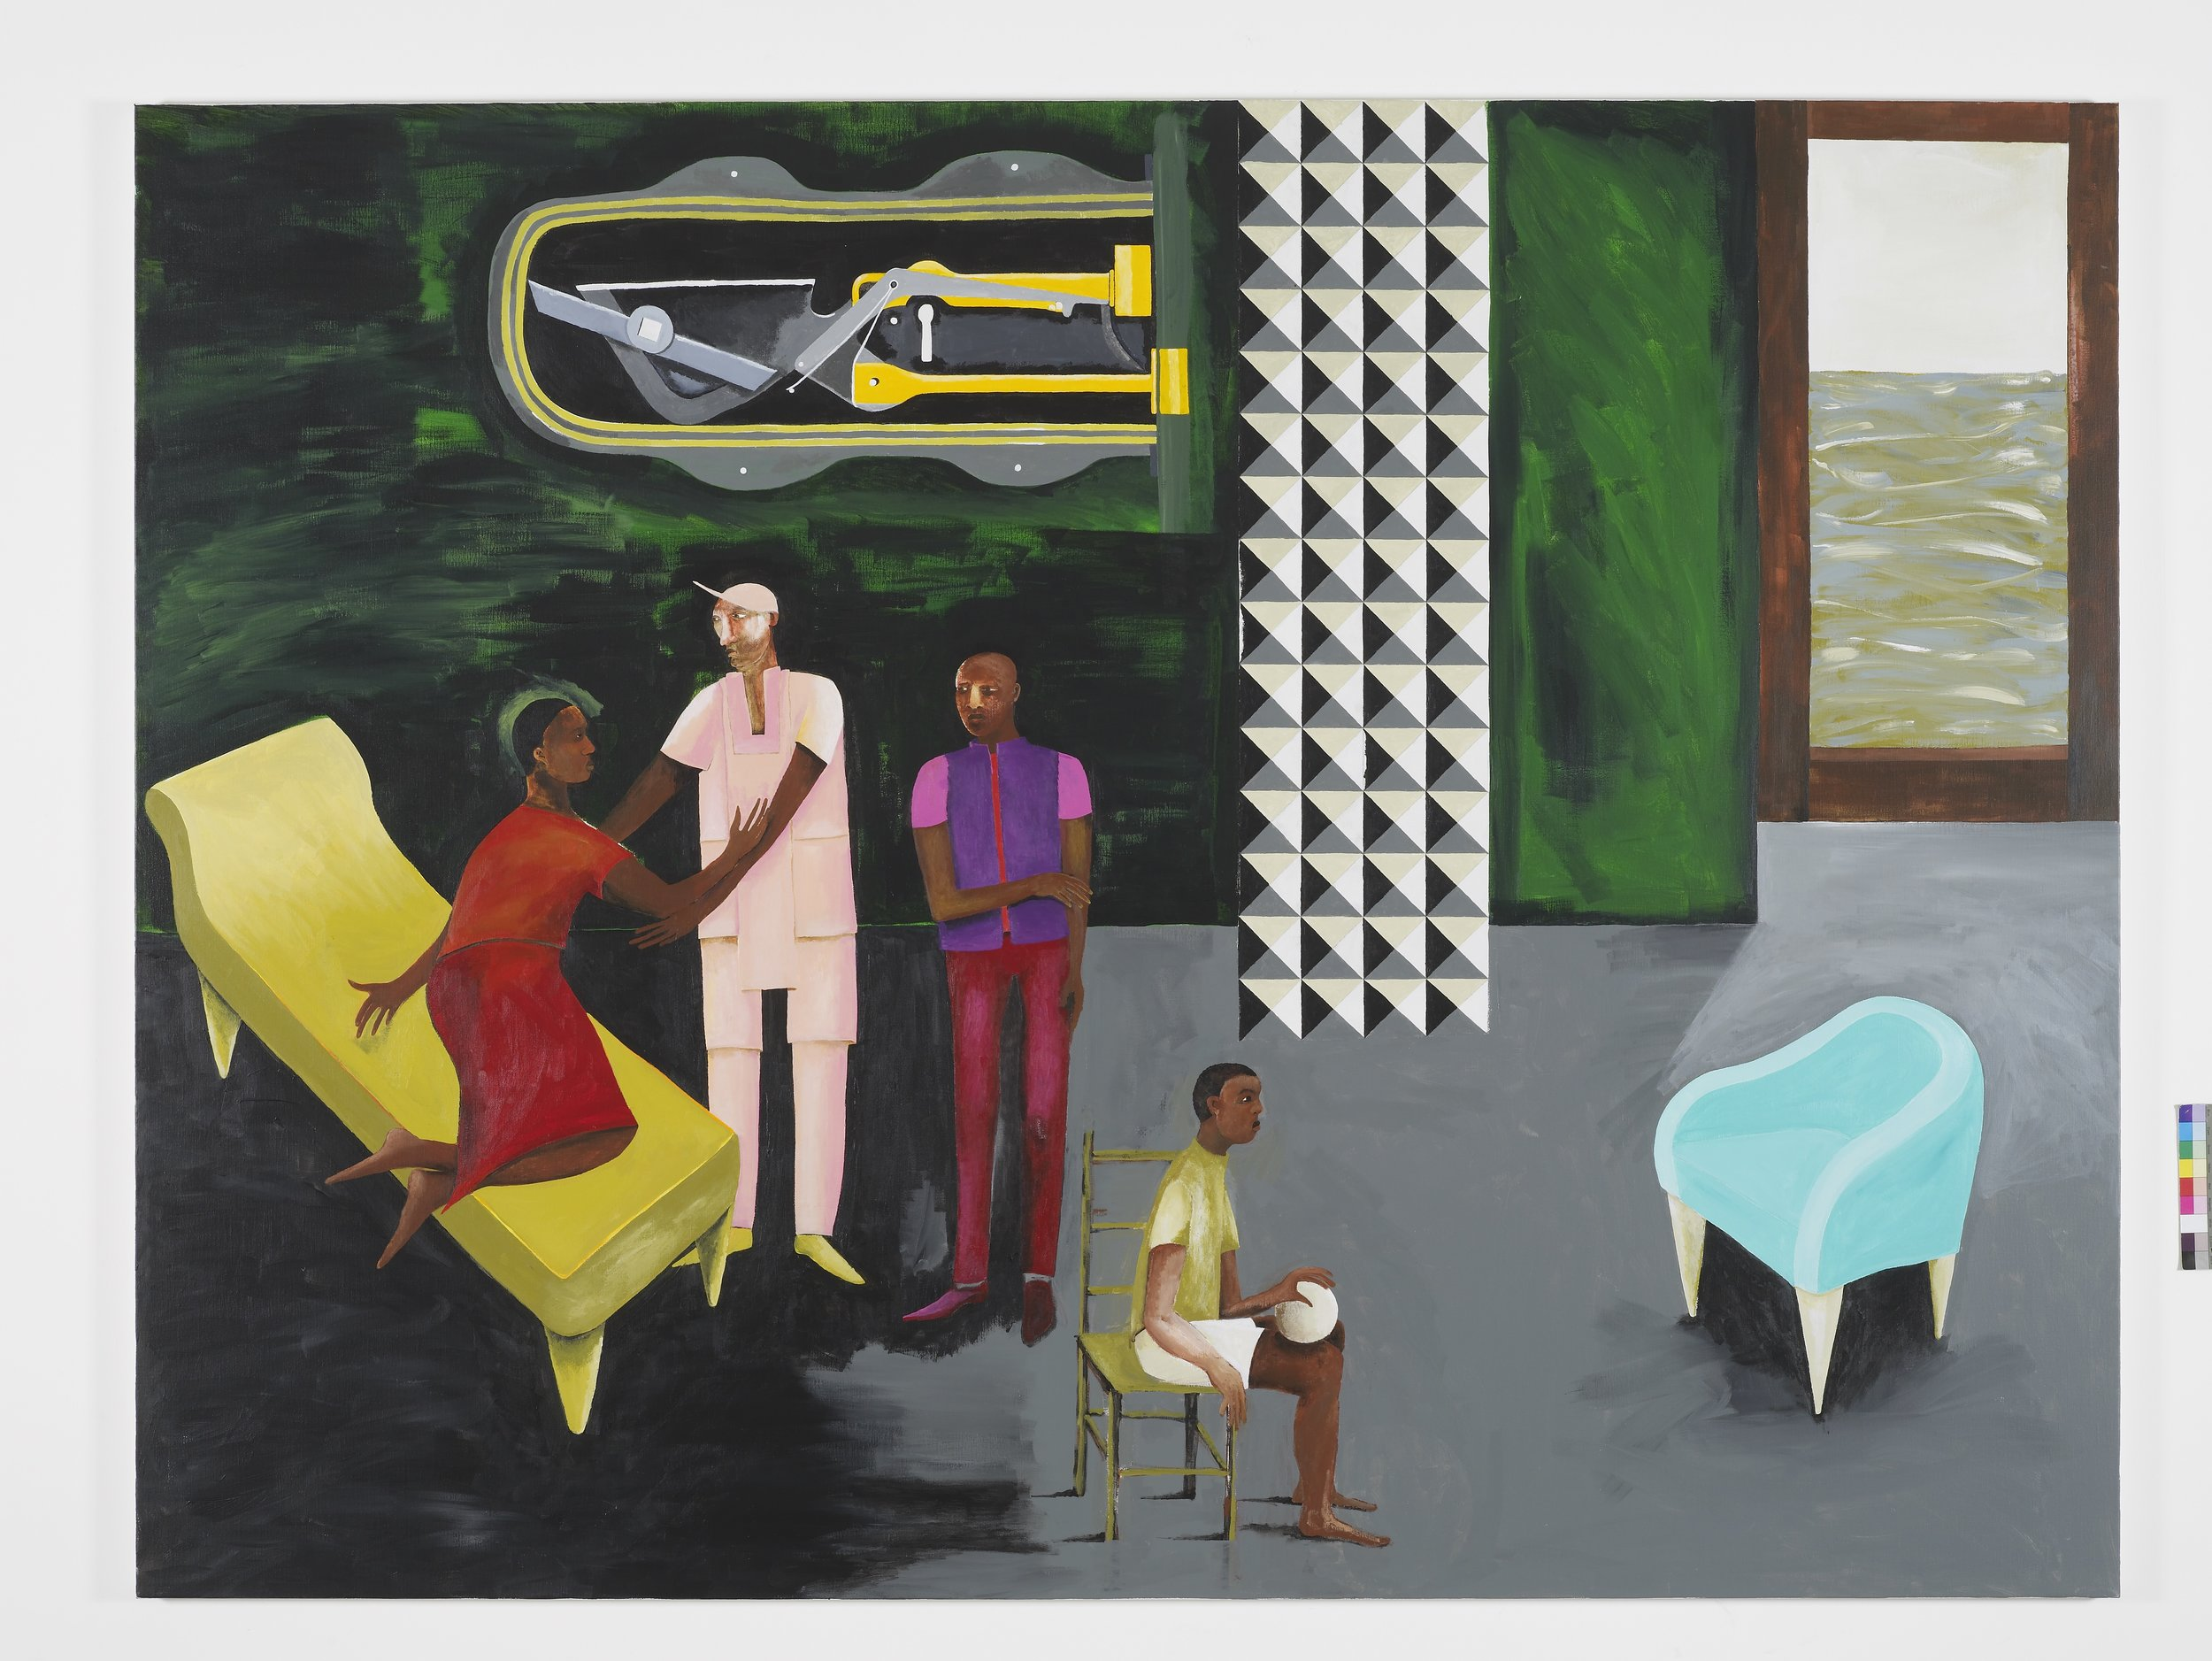 Lubaina Himid, Le Rodeur: The Lock, 2016. Acrylic on canvas, 72 x 96 1/8 in (183 x 244 cm). Courtesy the artist and Hollybush Gardens. Photo: Andy Keat